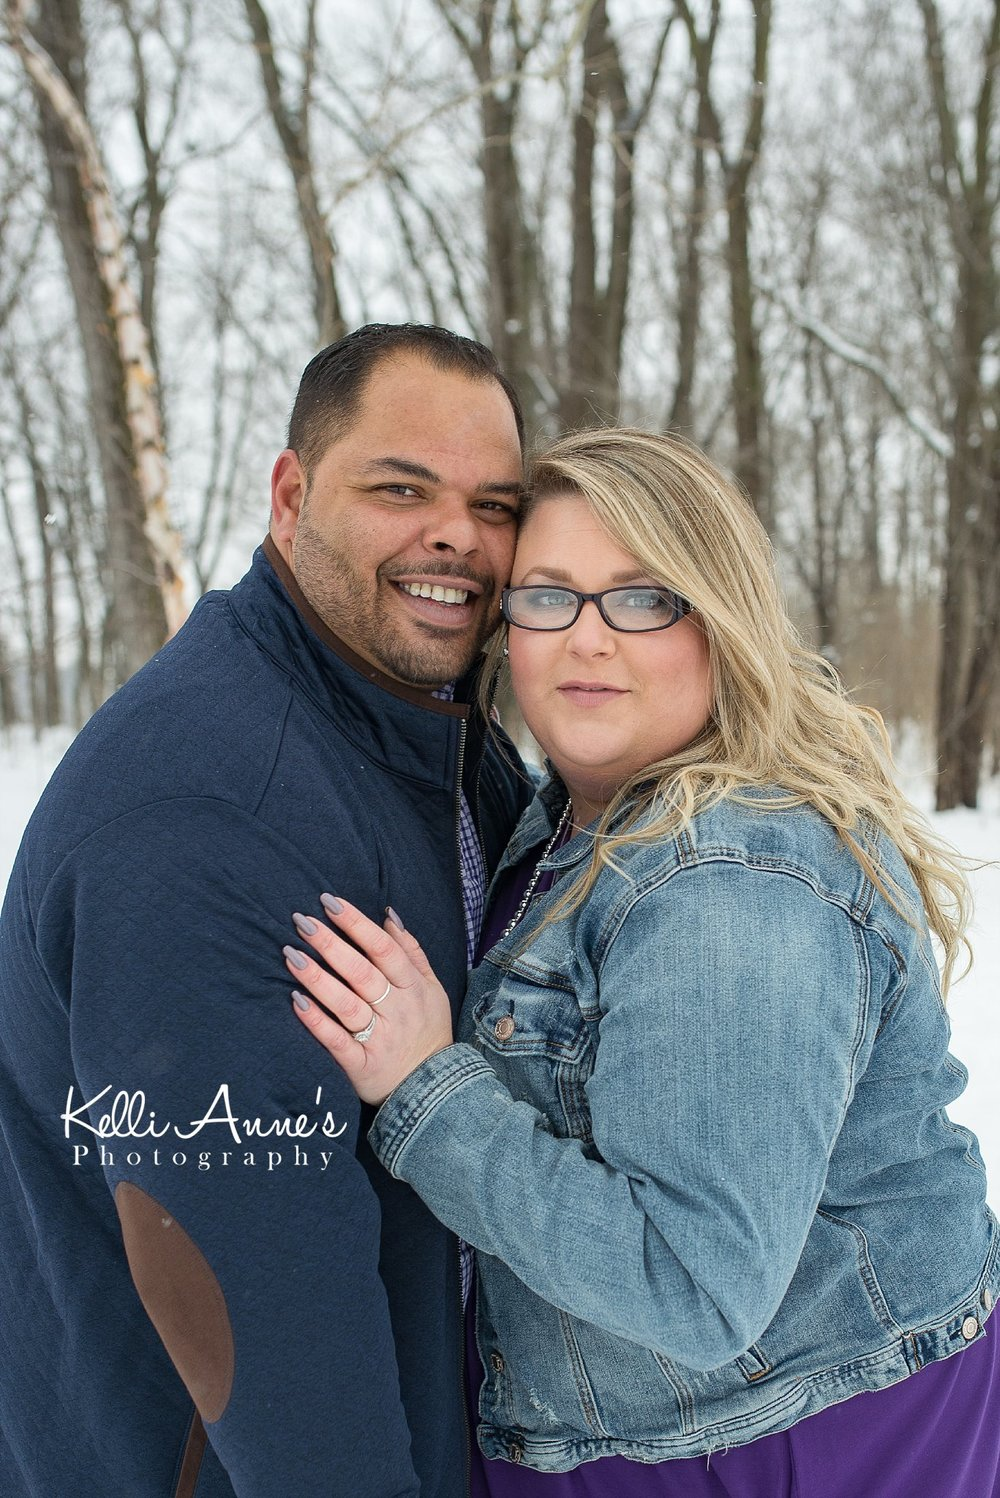 Snowy Jeff City Engagement Session